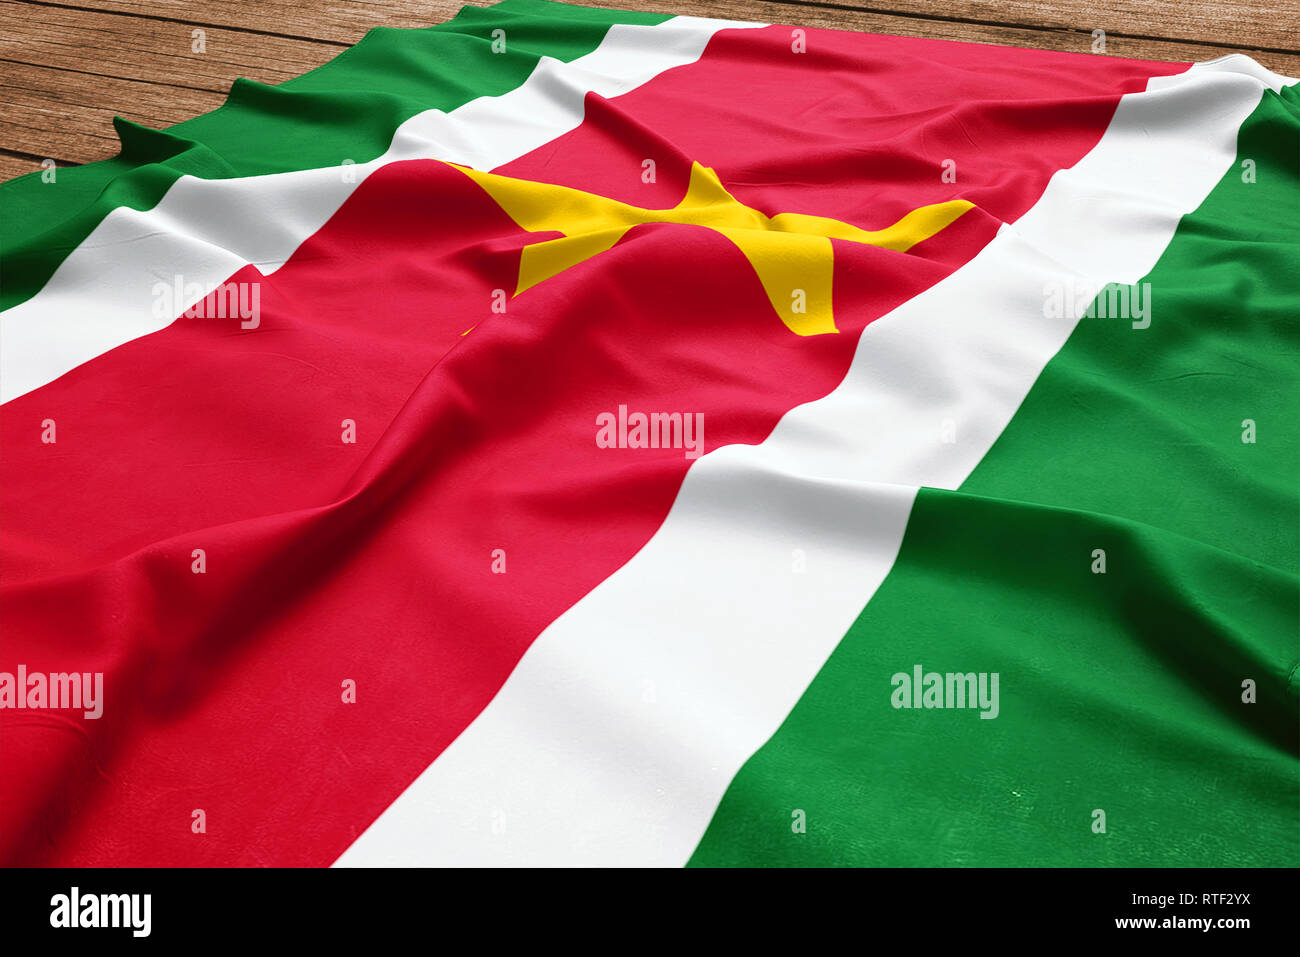 Flag of Suriname on a wooden desk background. Silk Surinamer flag top view. - Stock Image